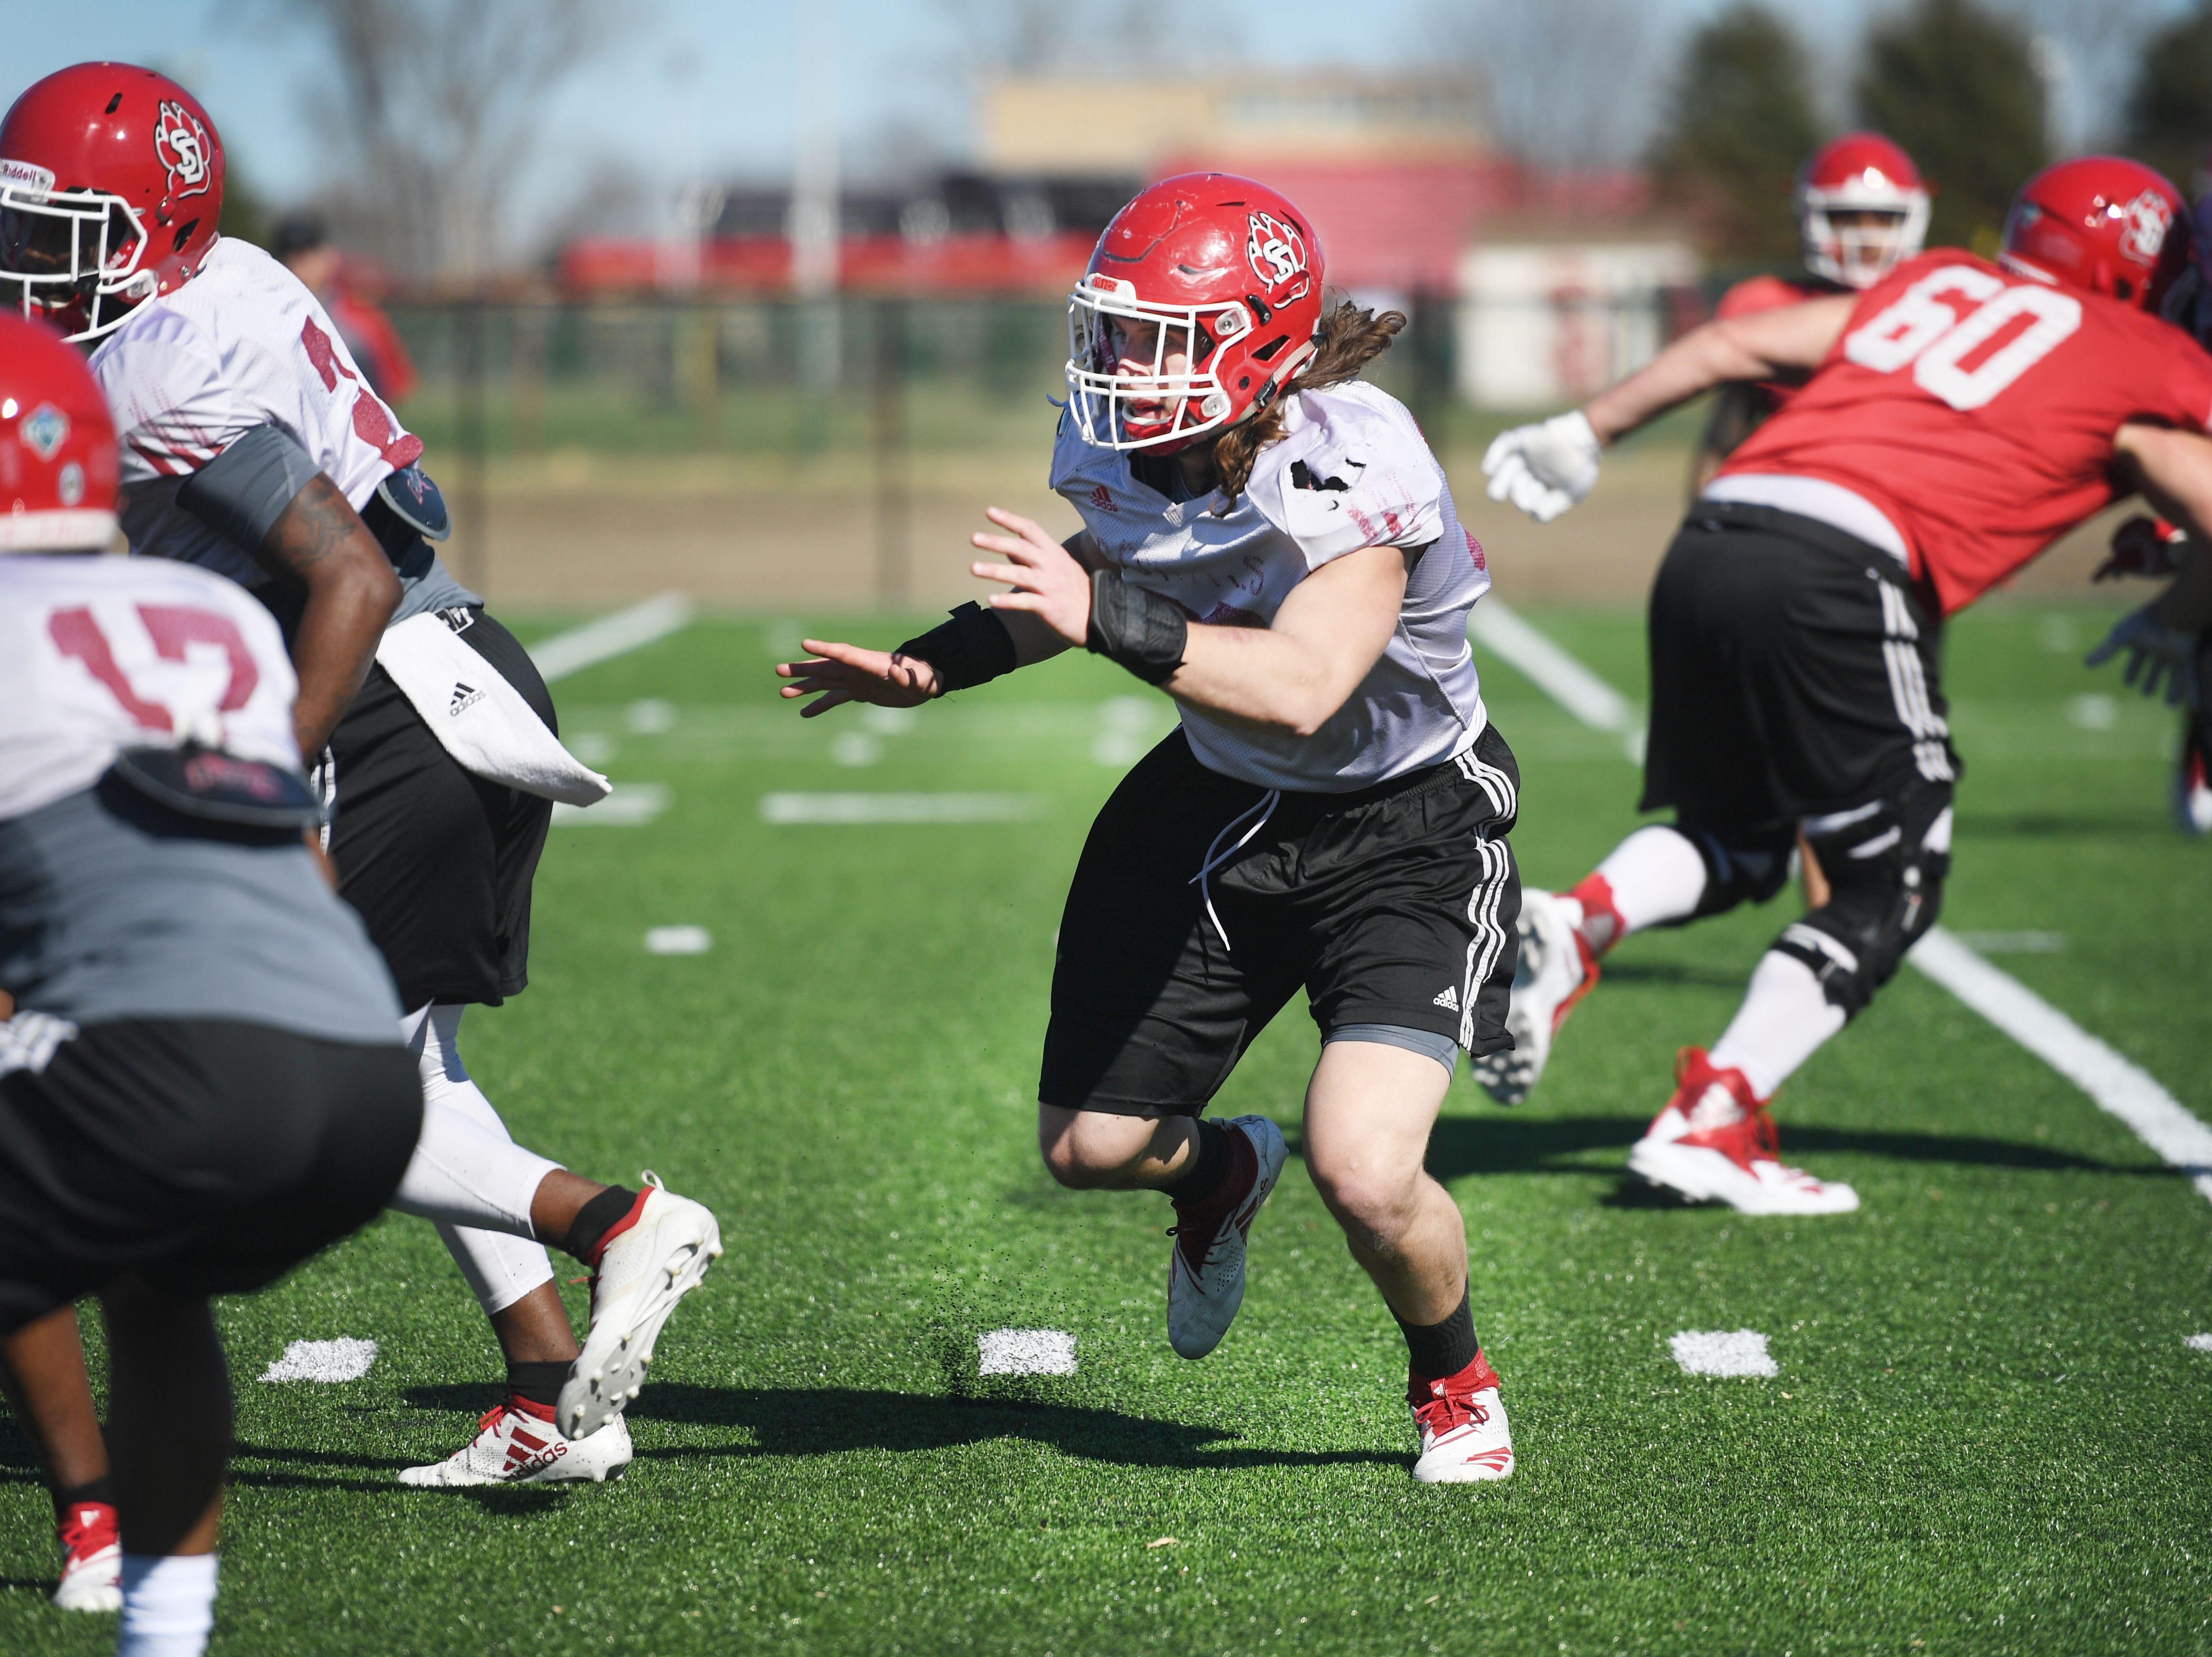 USD linebacker Jack Cochrane during spring football camp Monday, April, 8, on the outdoor practice field at the university in Vermillion.